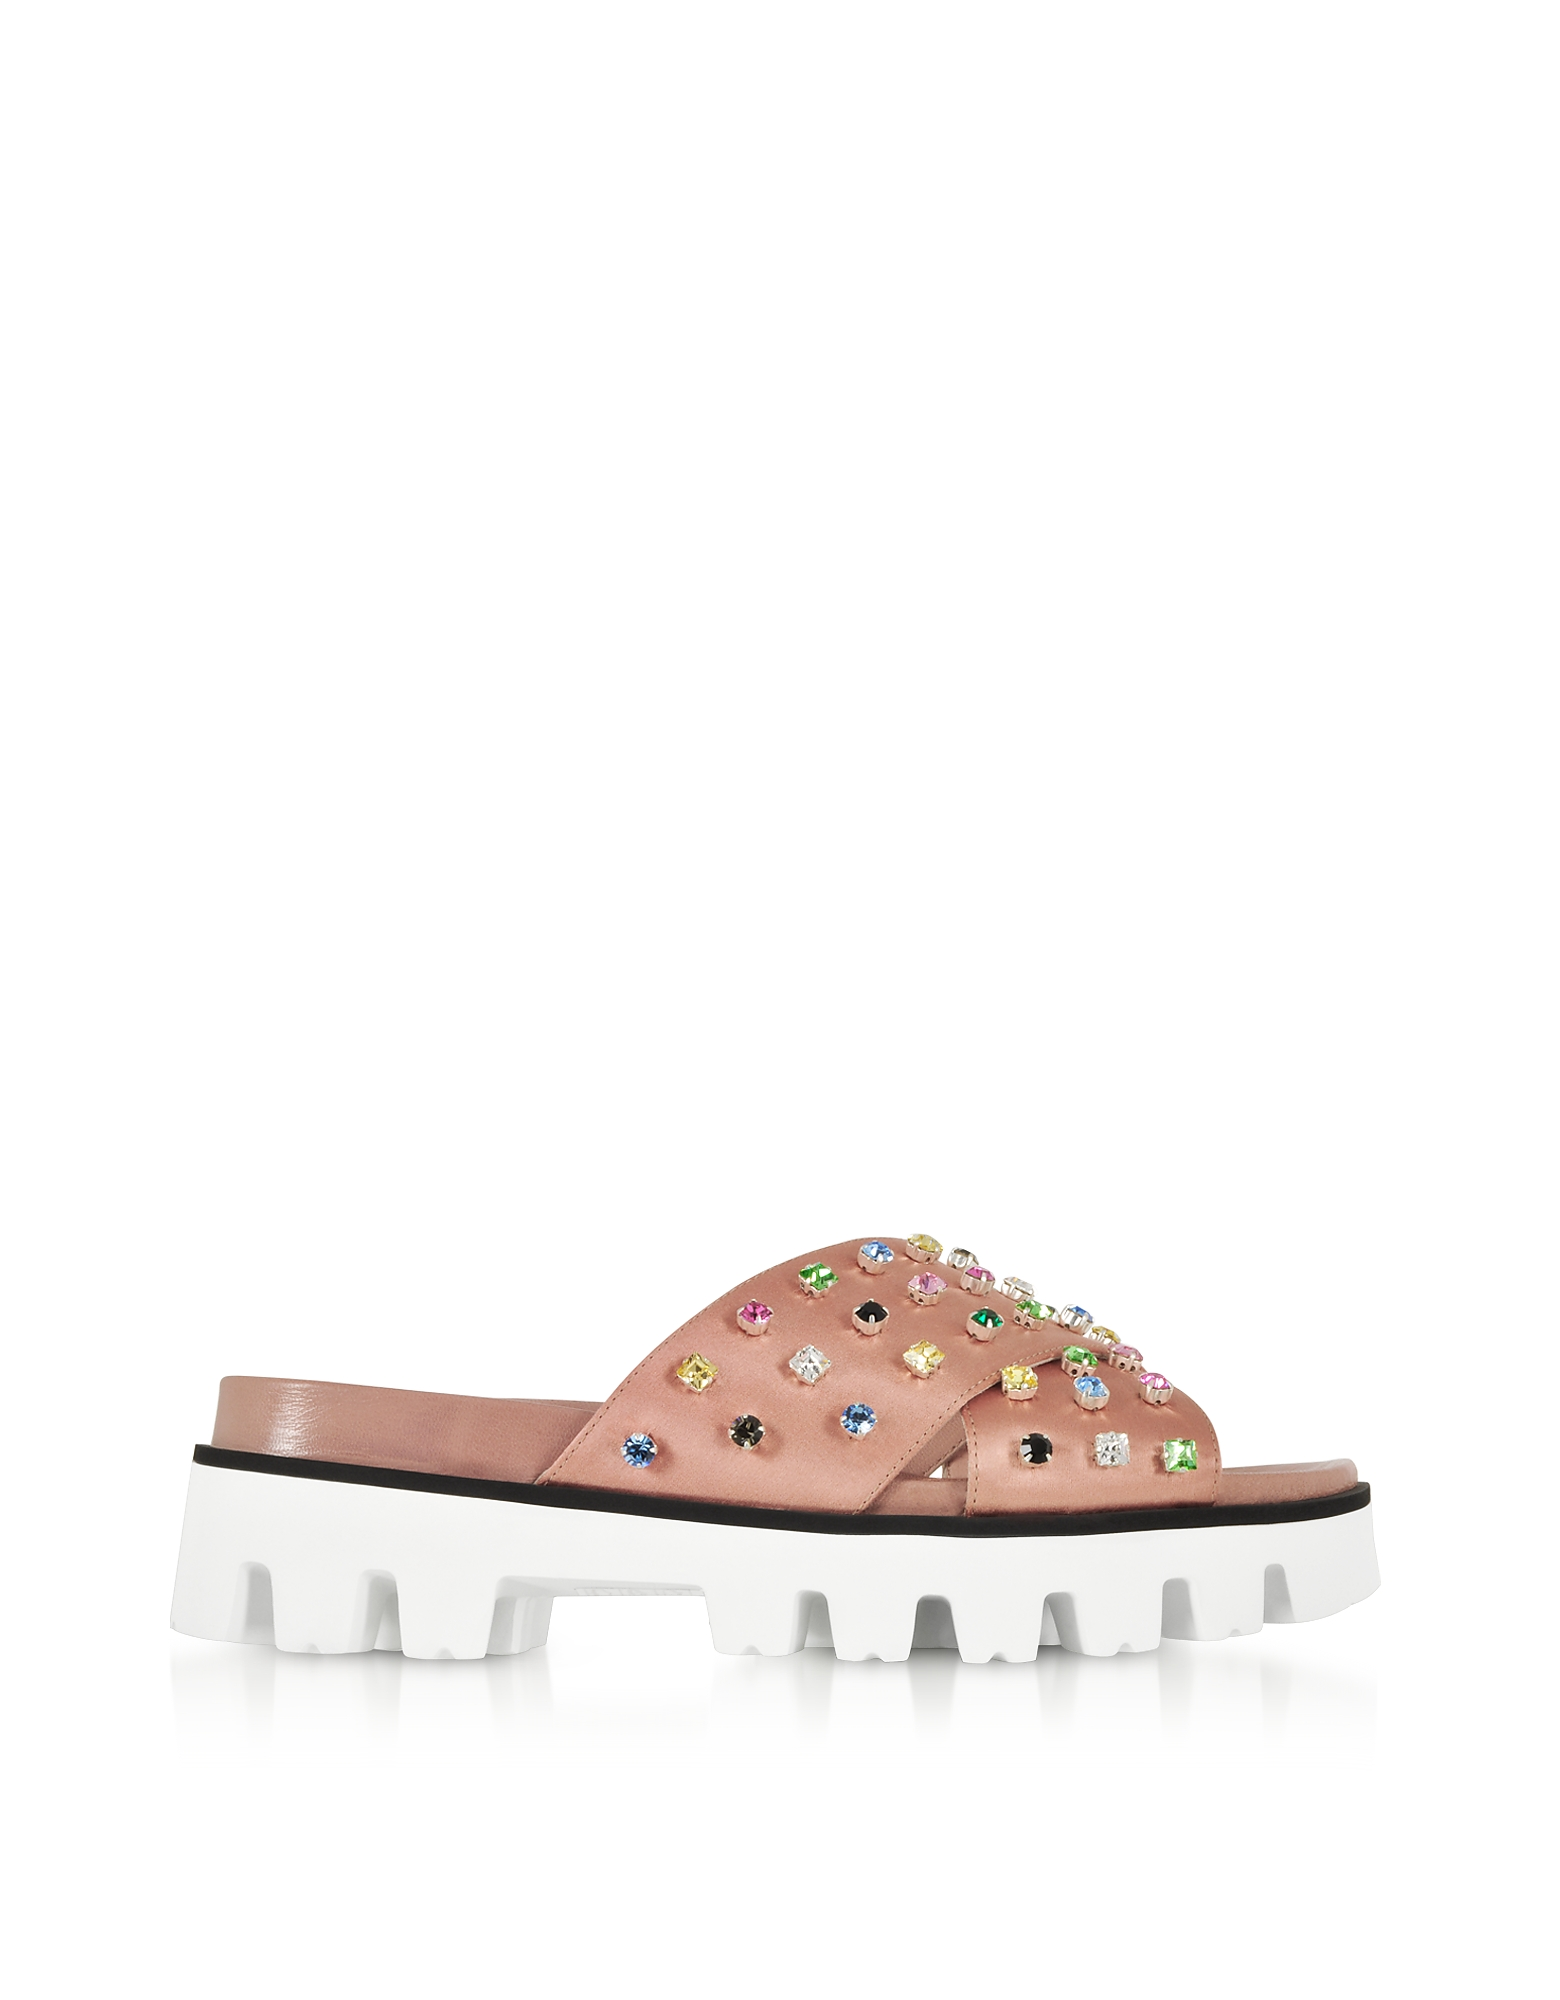 RED Valentino Shoes, Cammeo Satin Slide Sandals w/Crystals